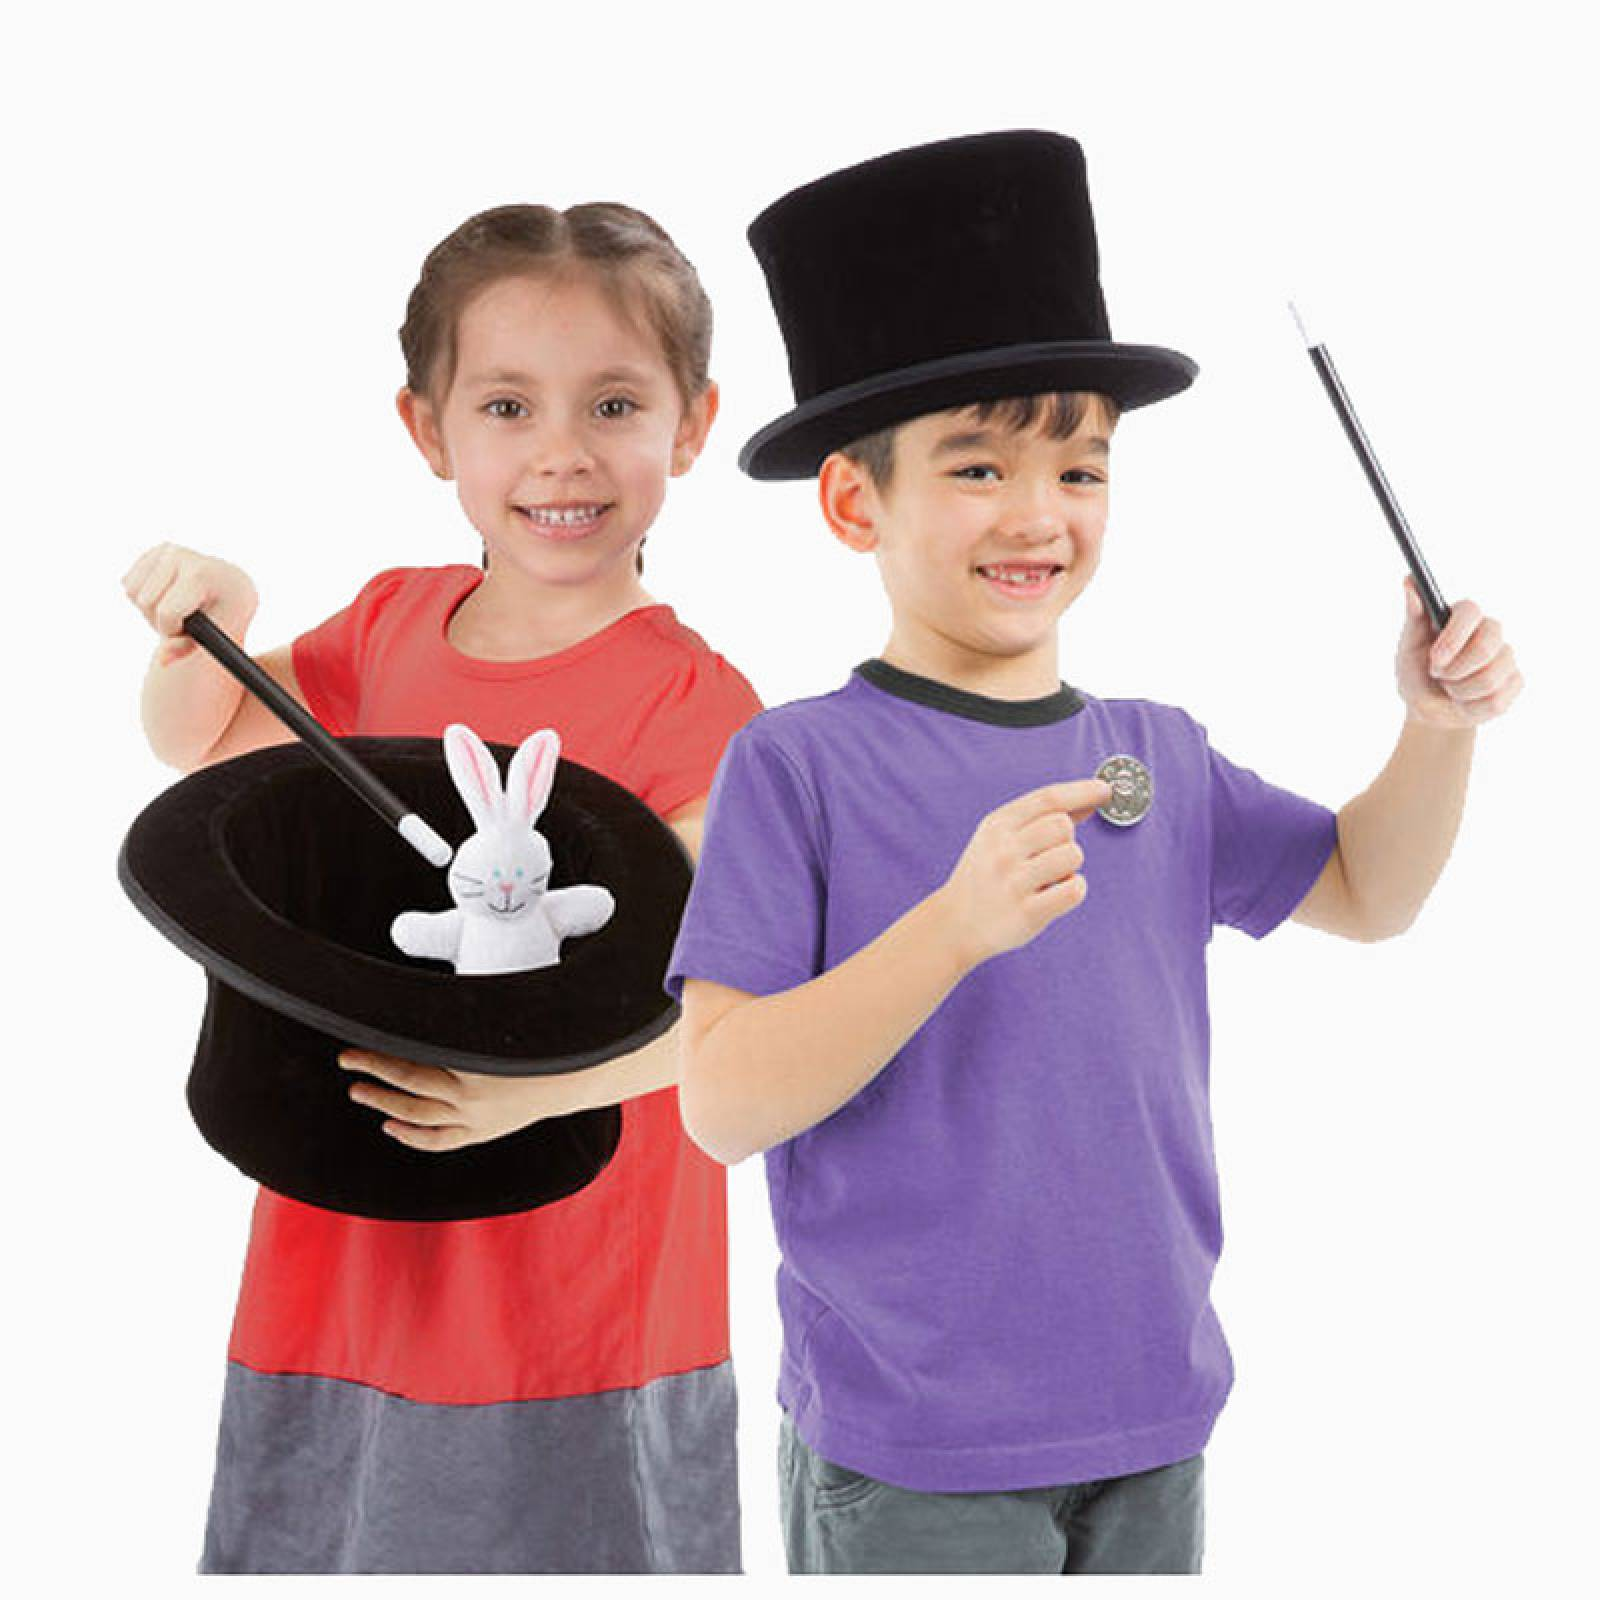 Magic in a Snap - Magician's Pop-Up Magical Hat with Tricks 4+ thumbnails